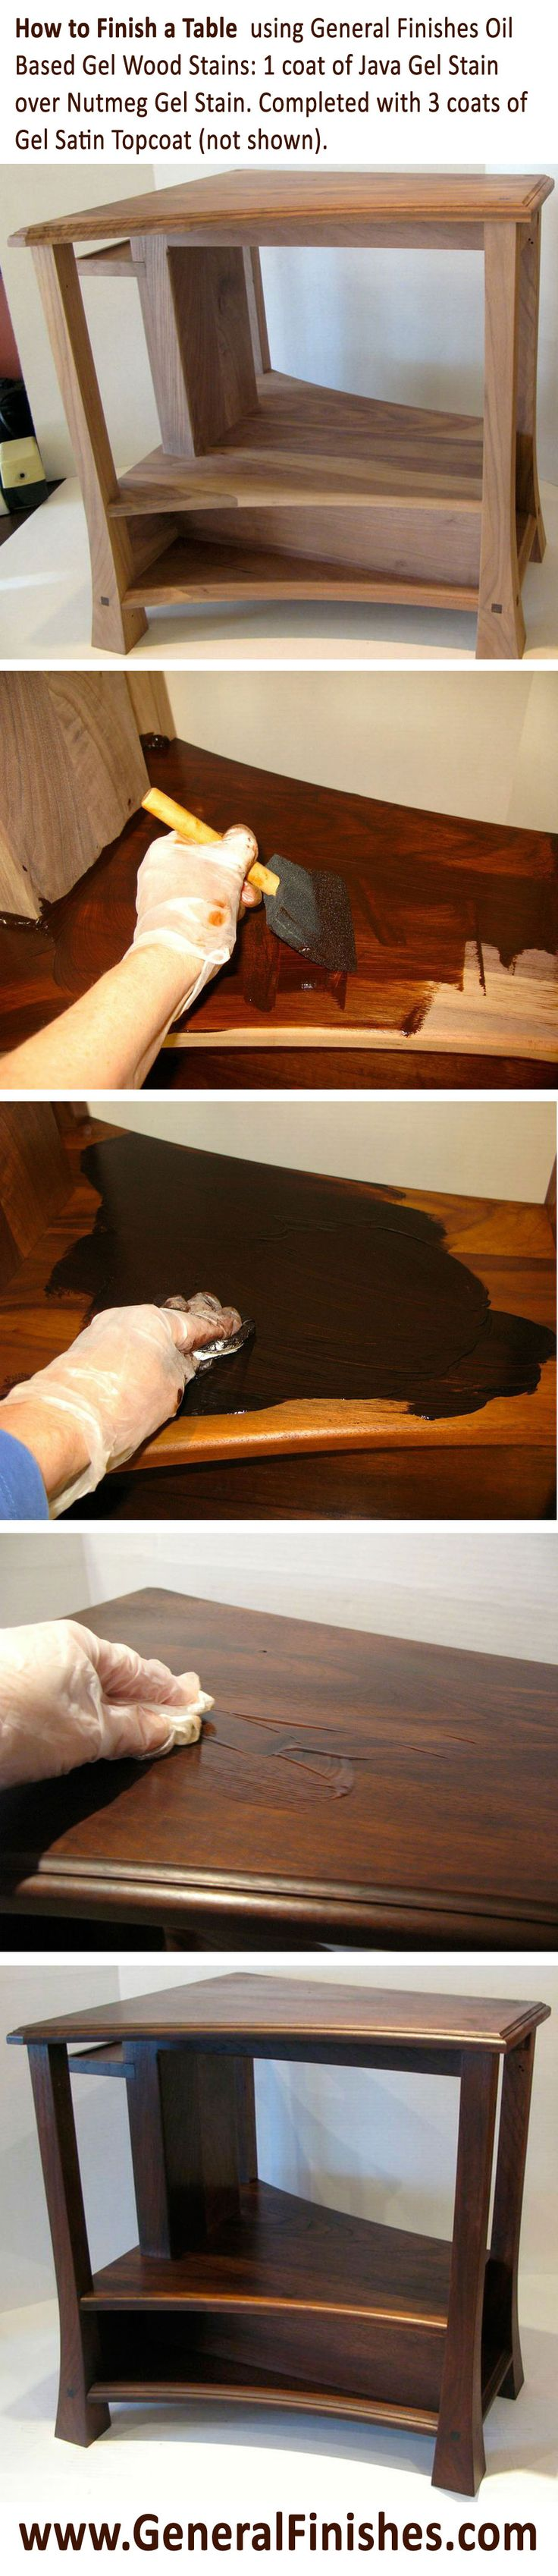 7 best general finishes from blah to wow images on pinterest 1 coat of java gel stain over nutmeg gel stain